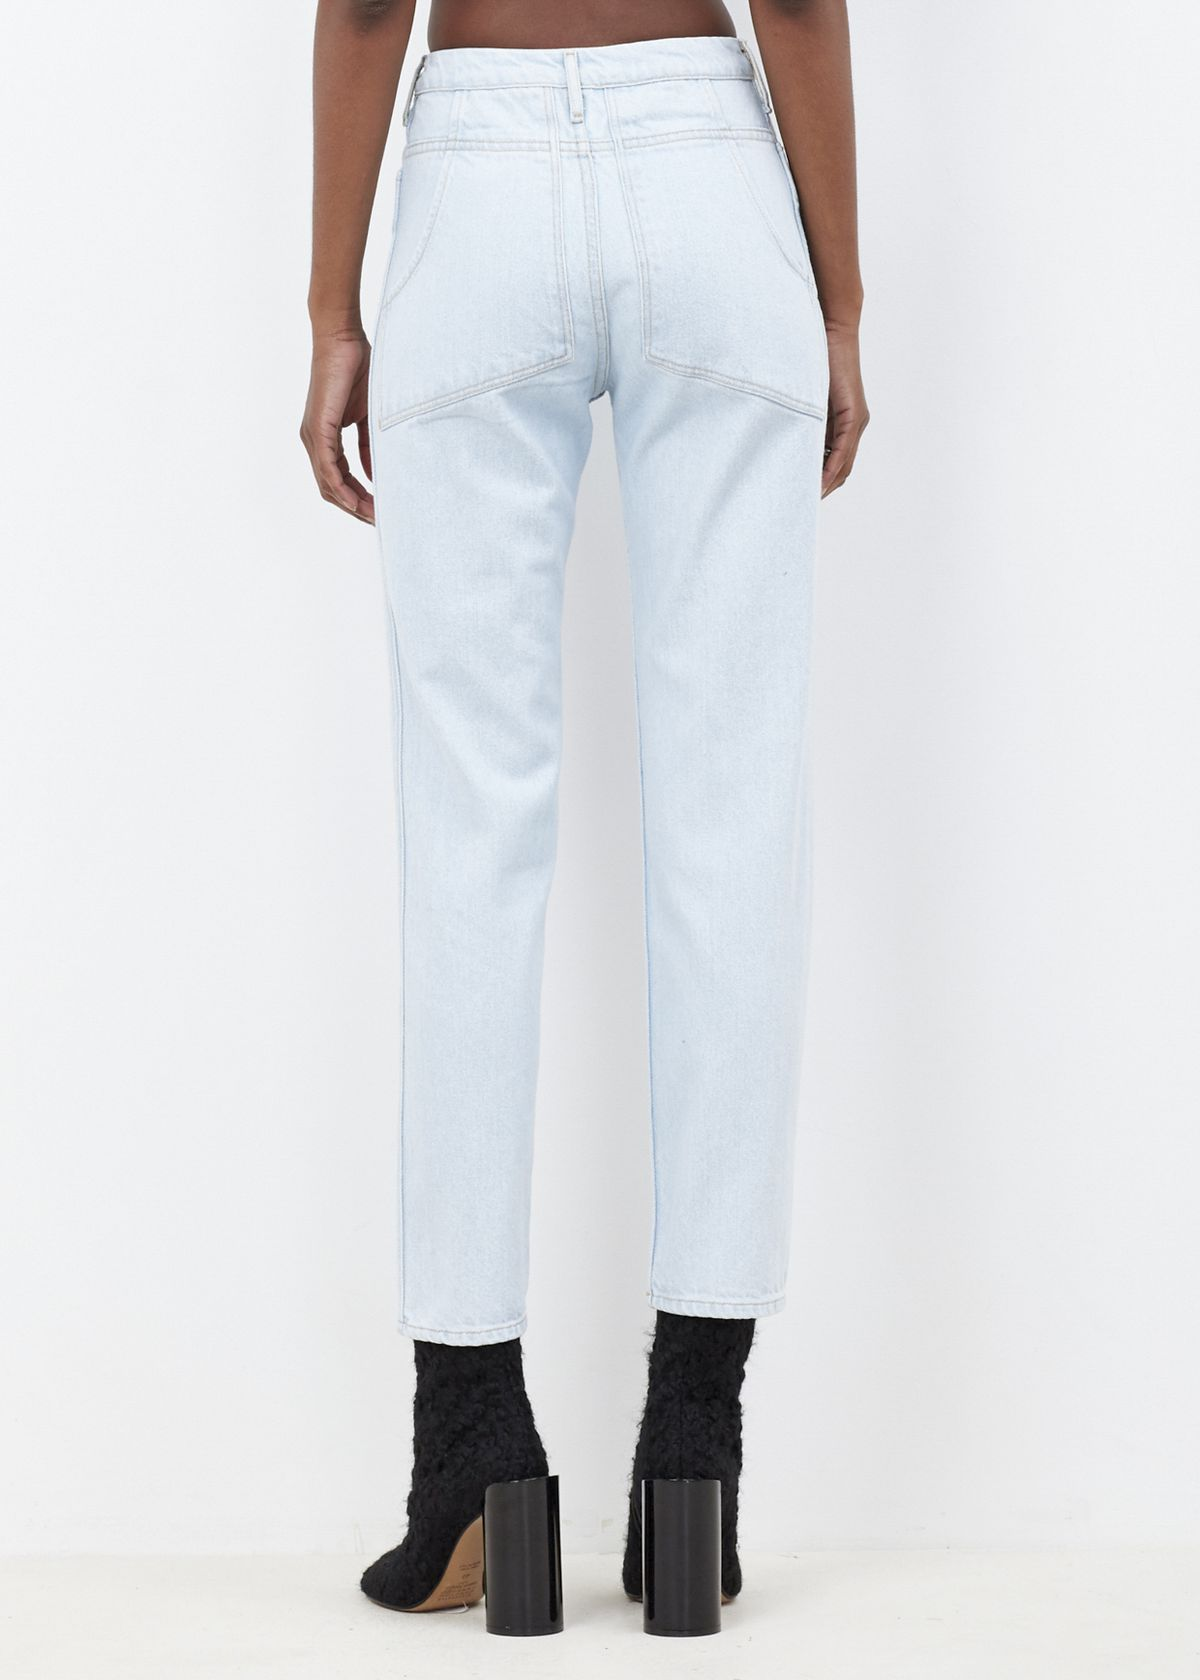 back view of jeans with slanted pockets